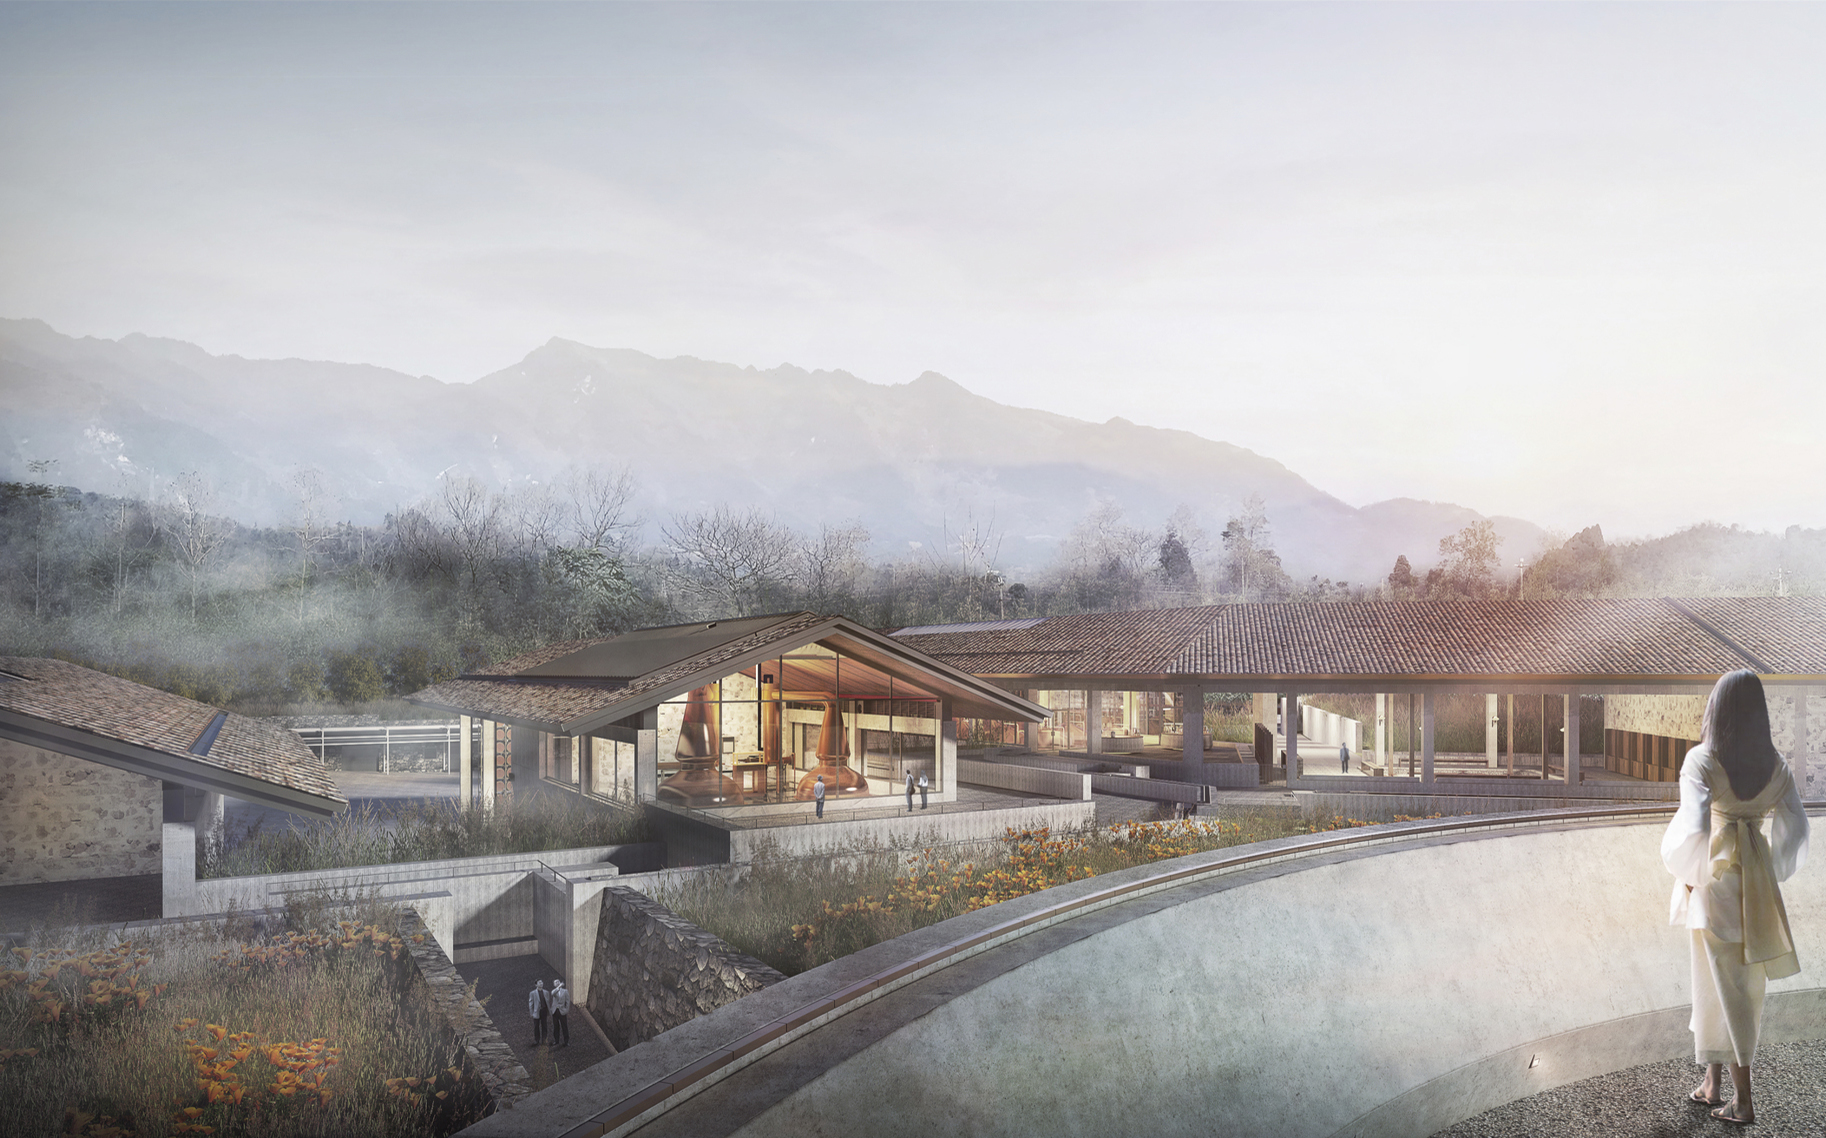 Pernod Ricard to build whisky distillery in China